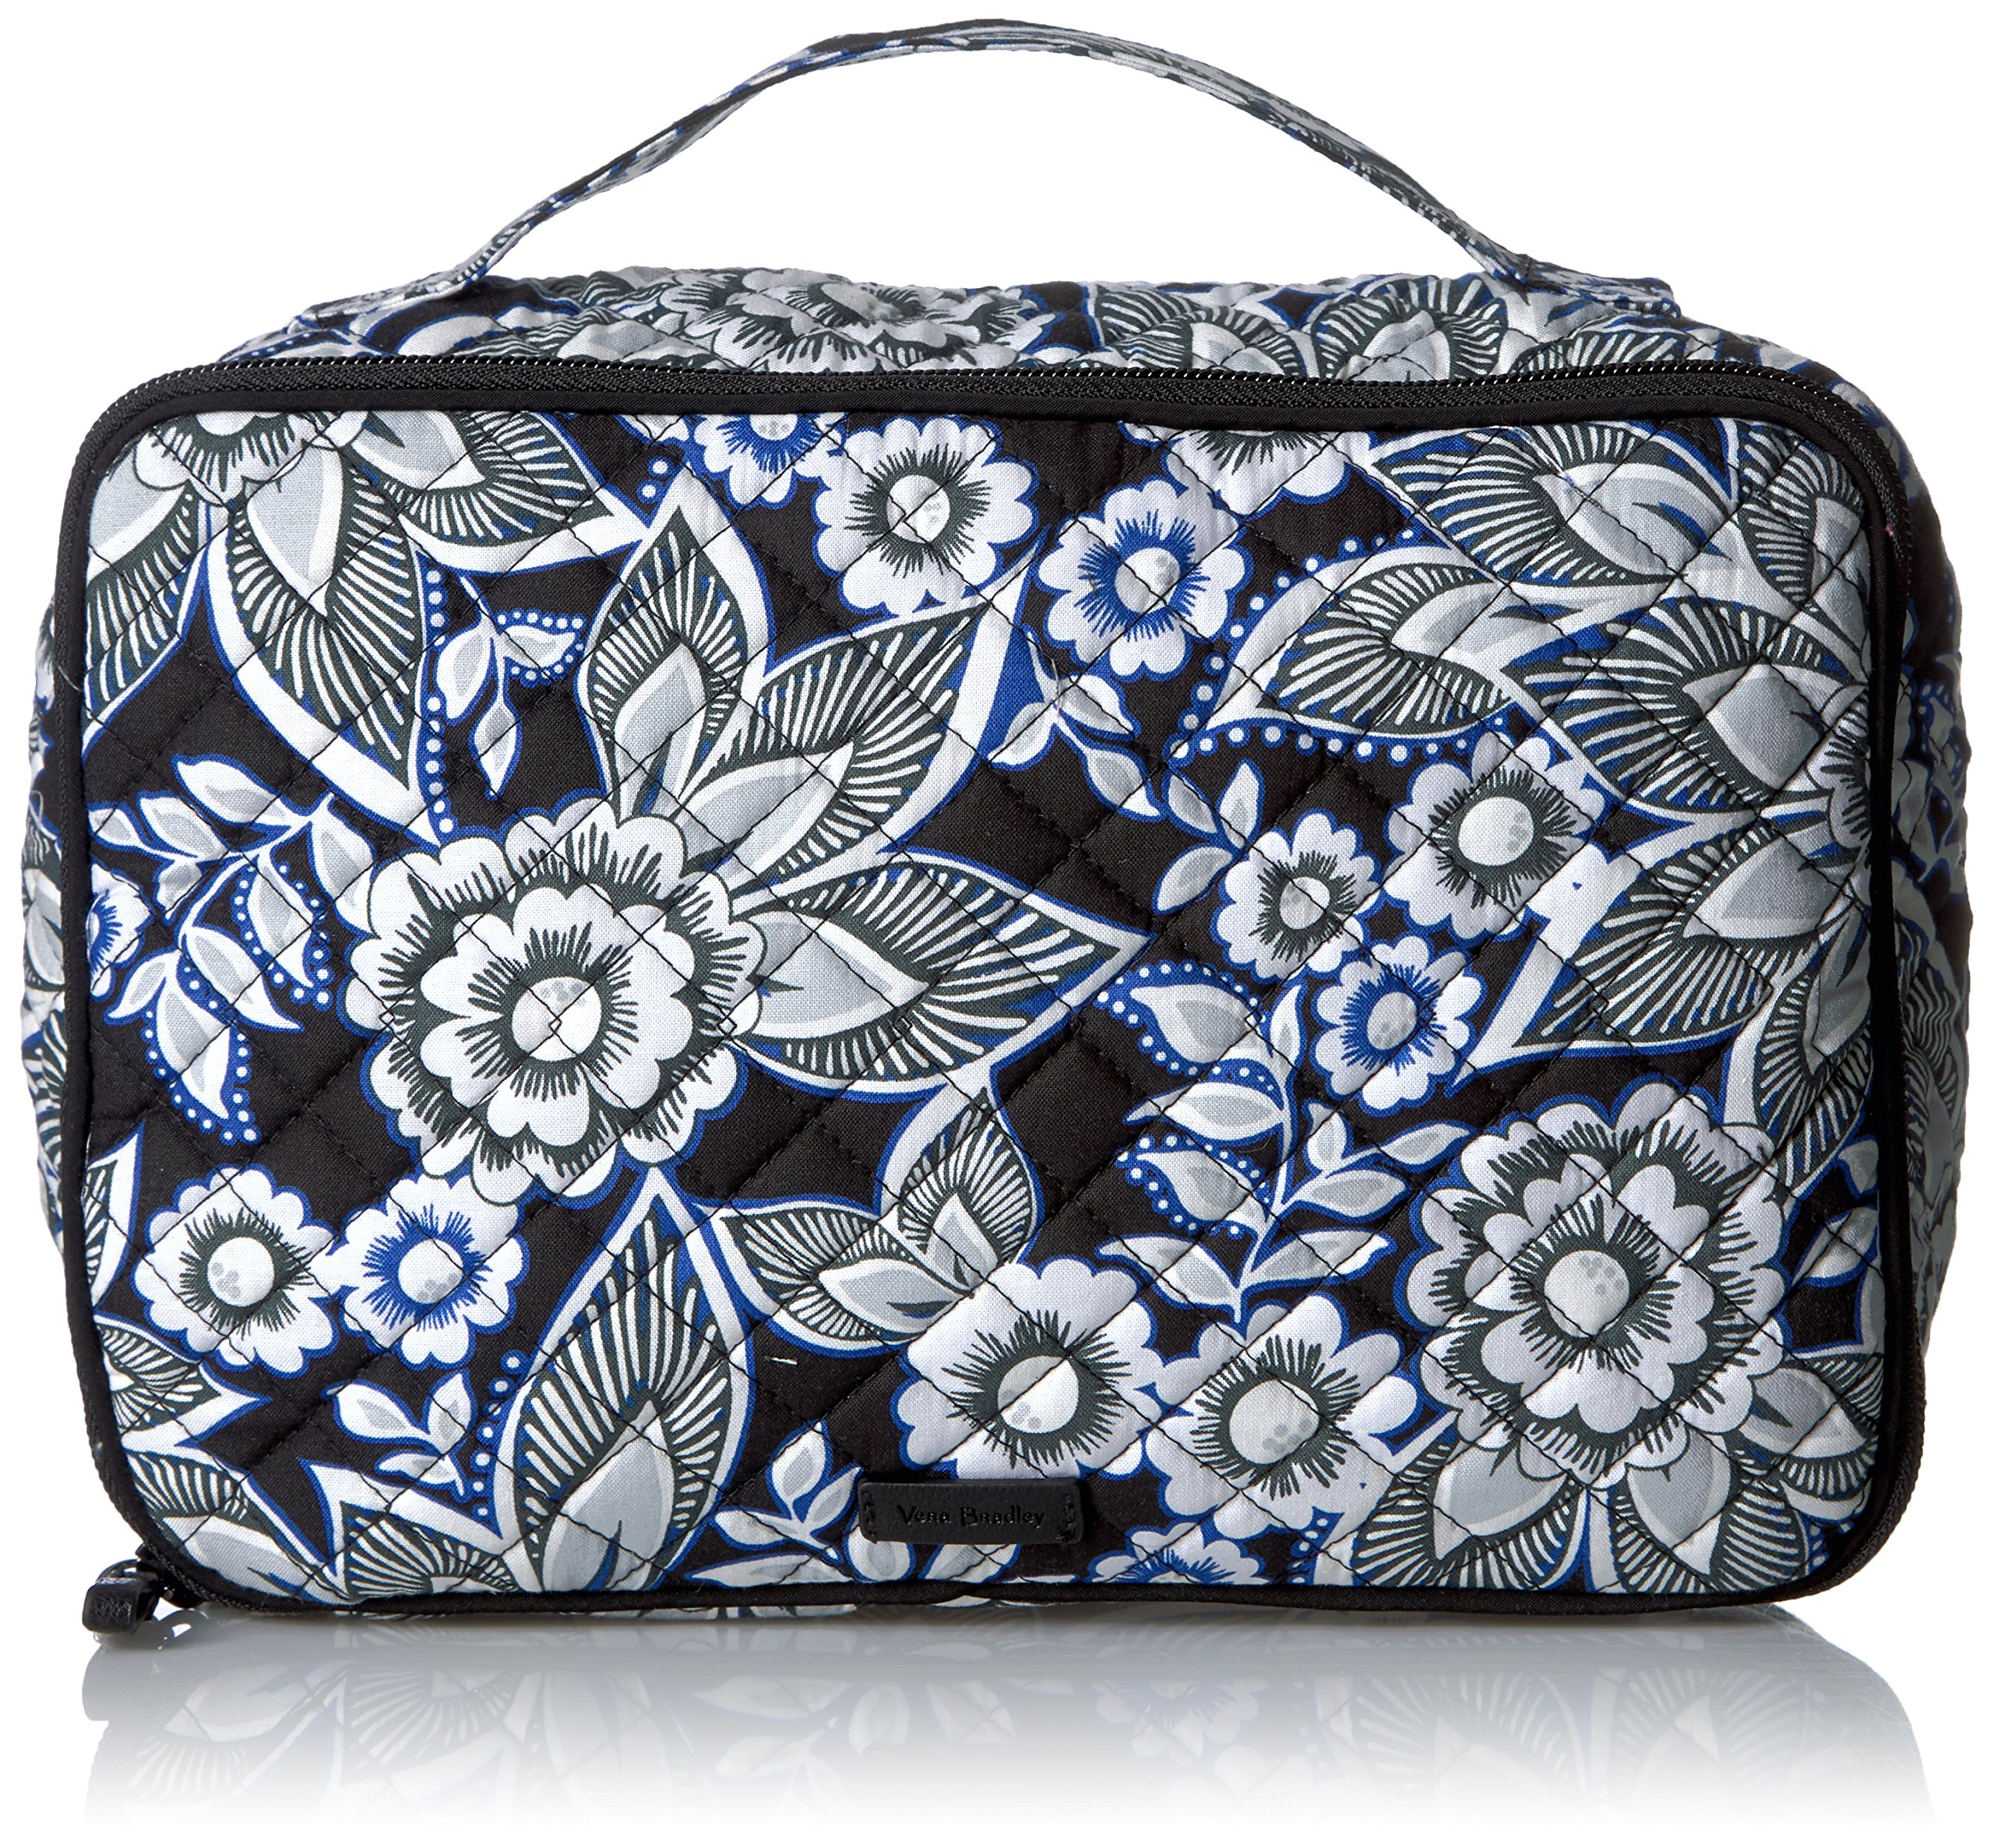 Vera Bradley Women's Iconic Large Blush and Brush Case-Signature